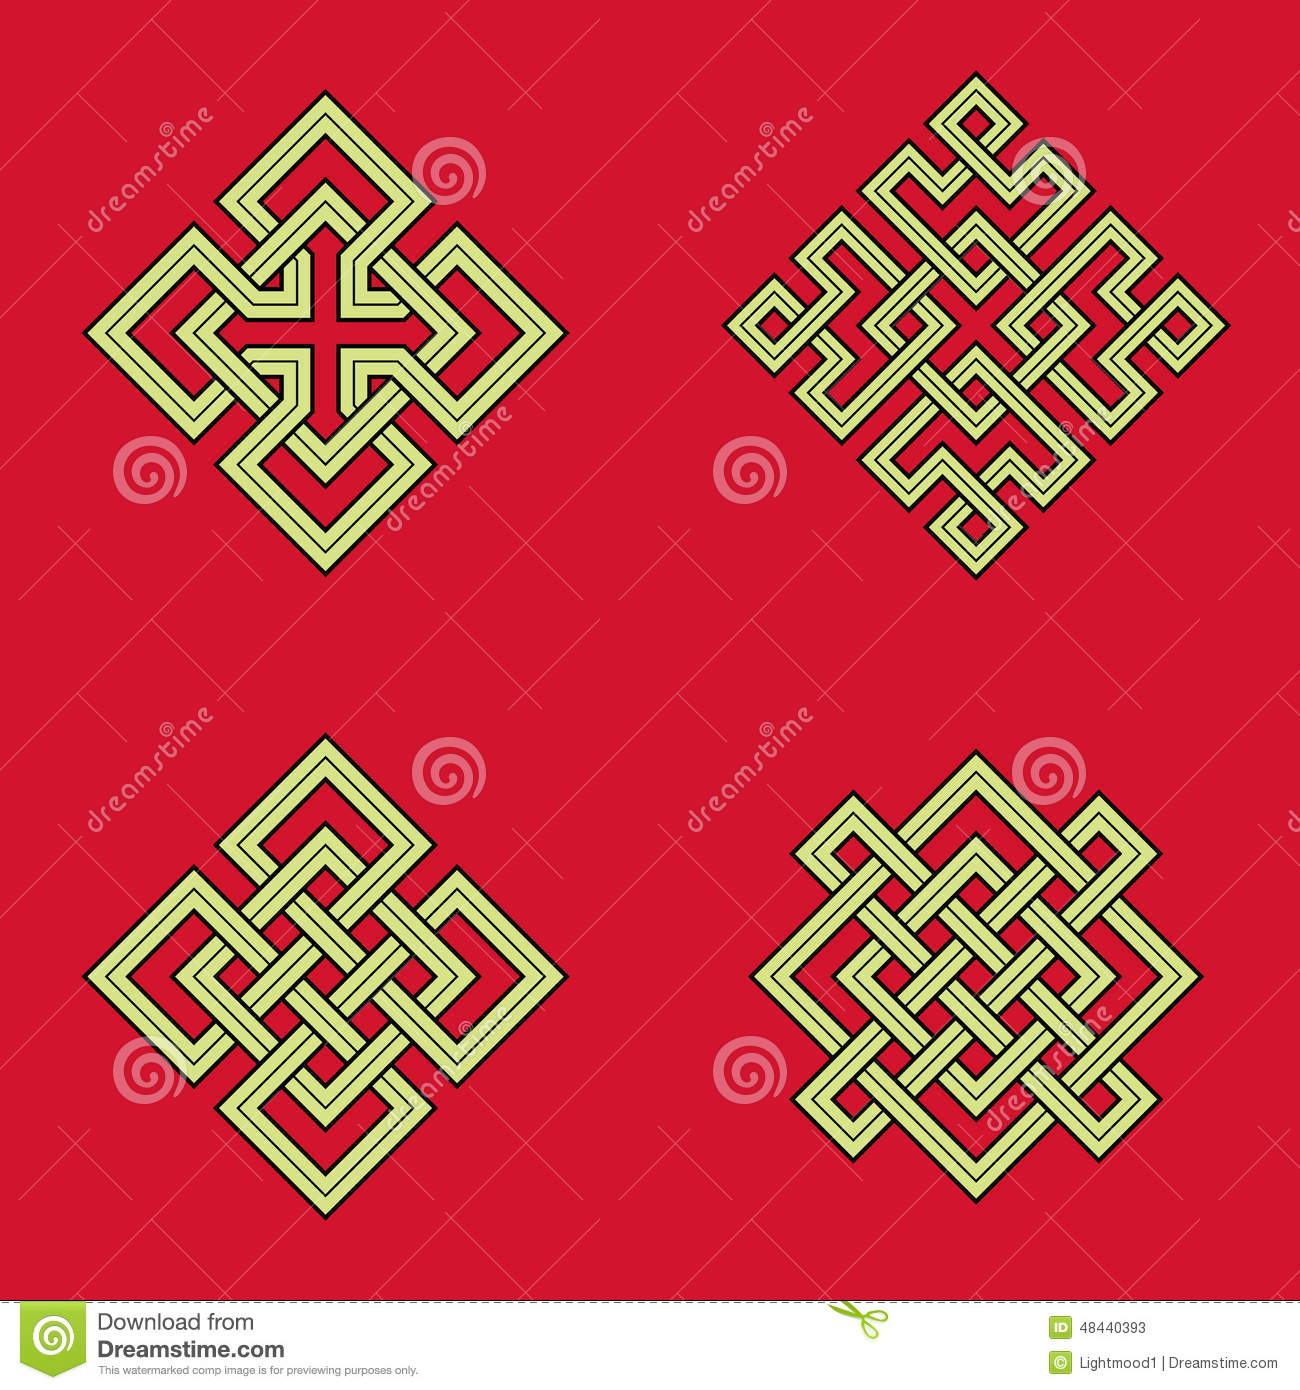 Buddhist Symbols Meaning Images Meaning Of This Symbol